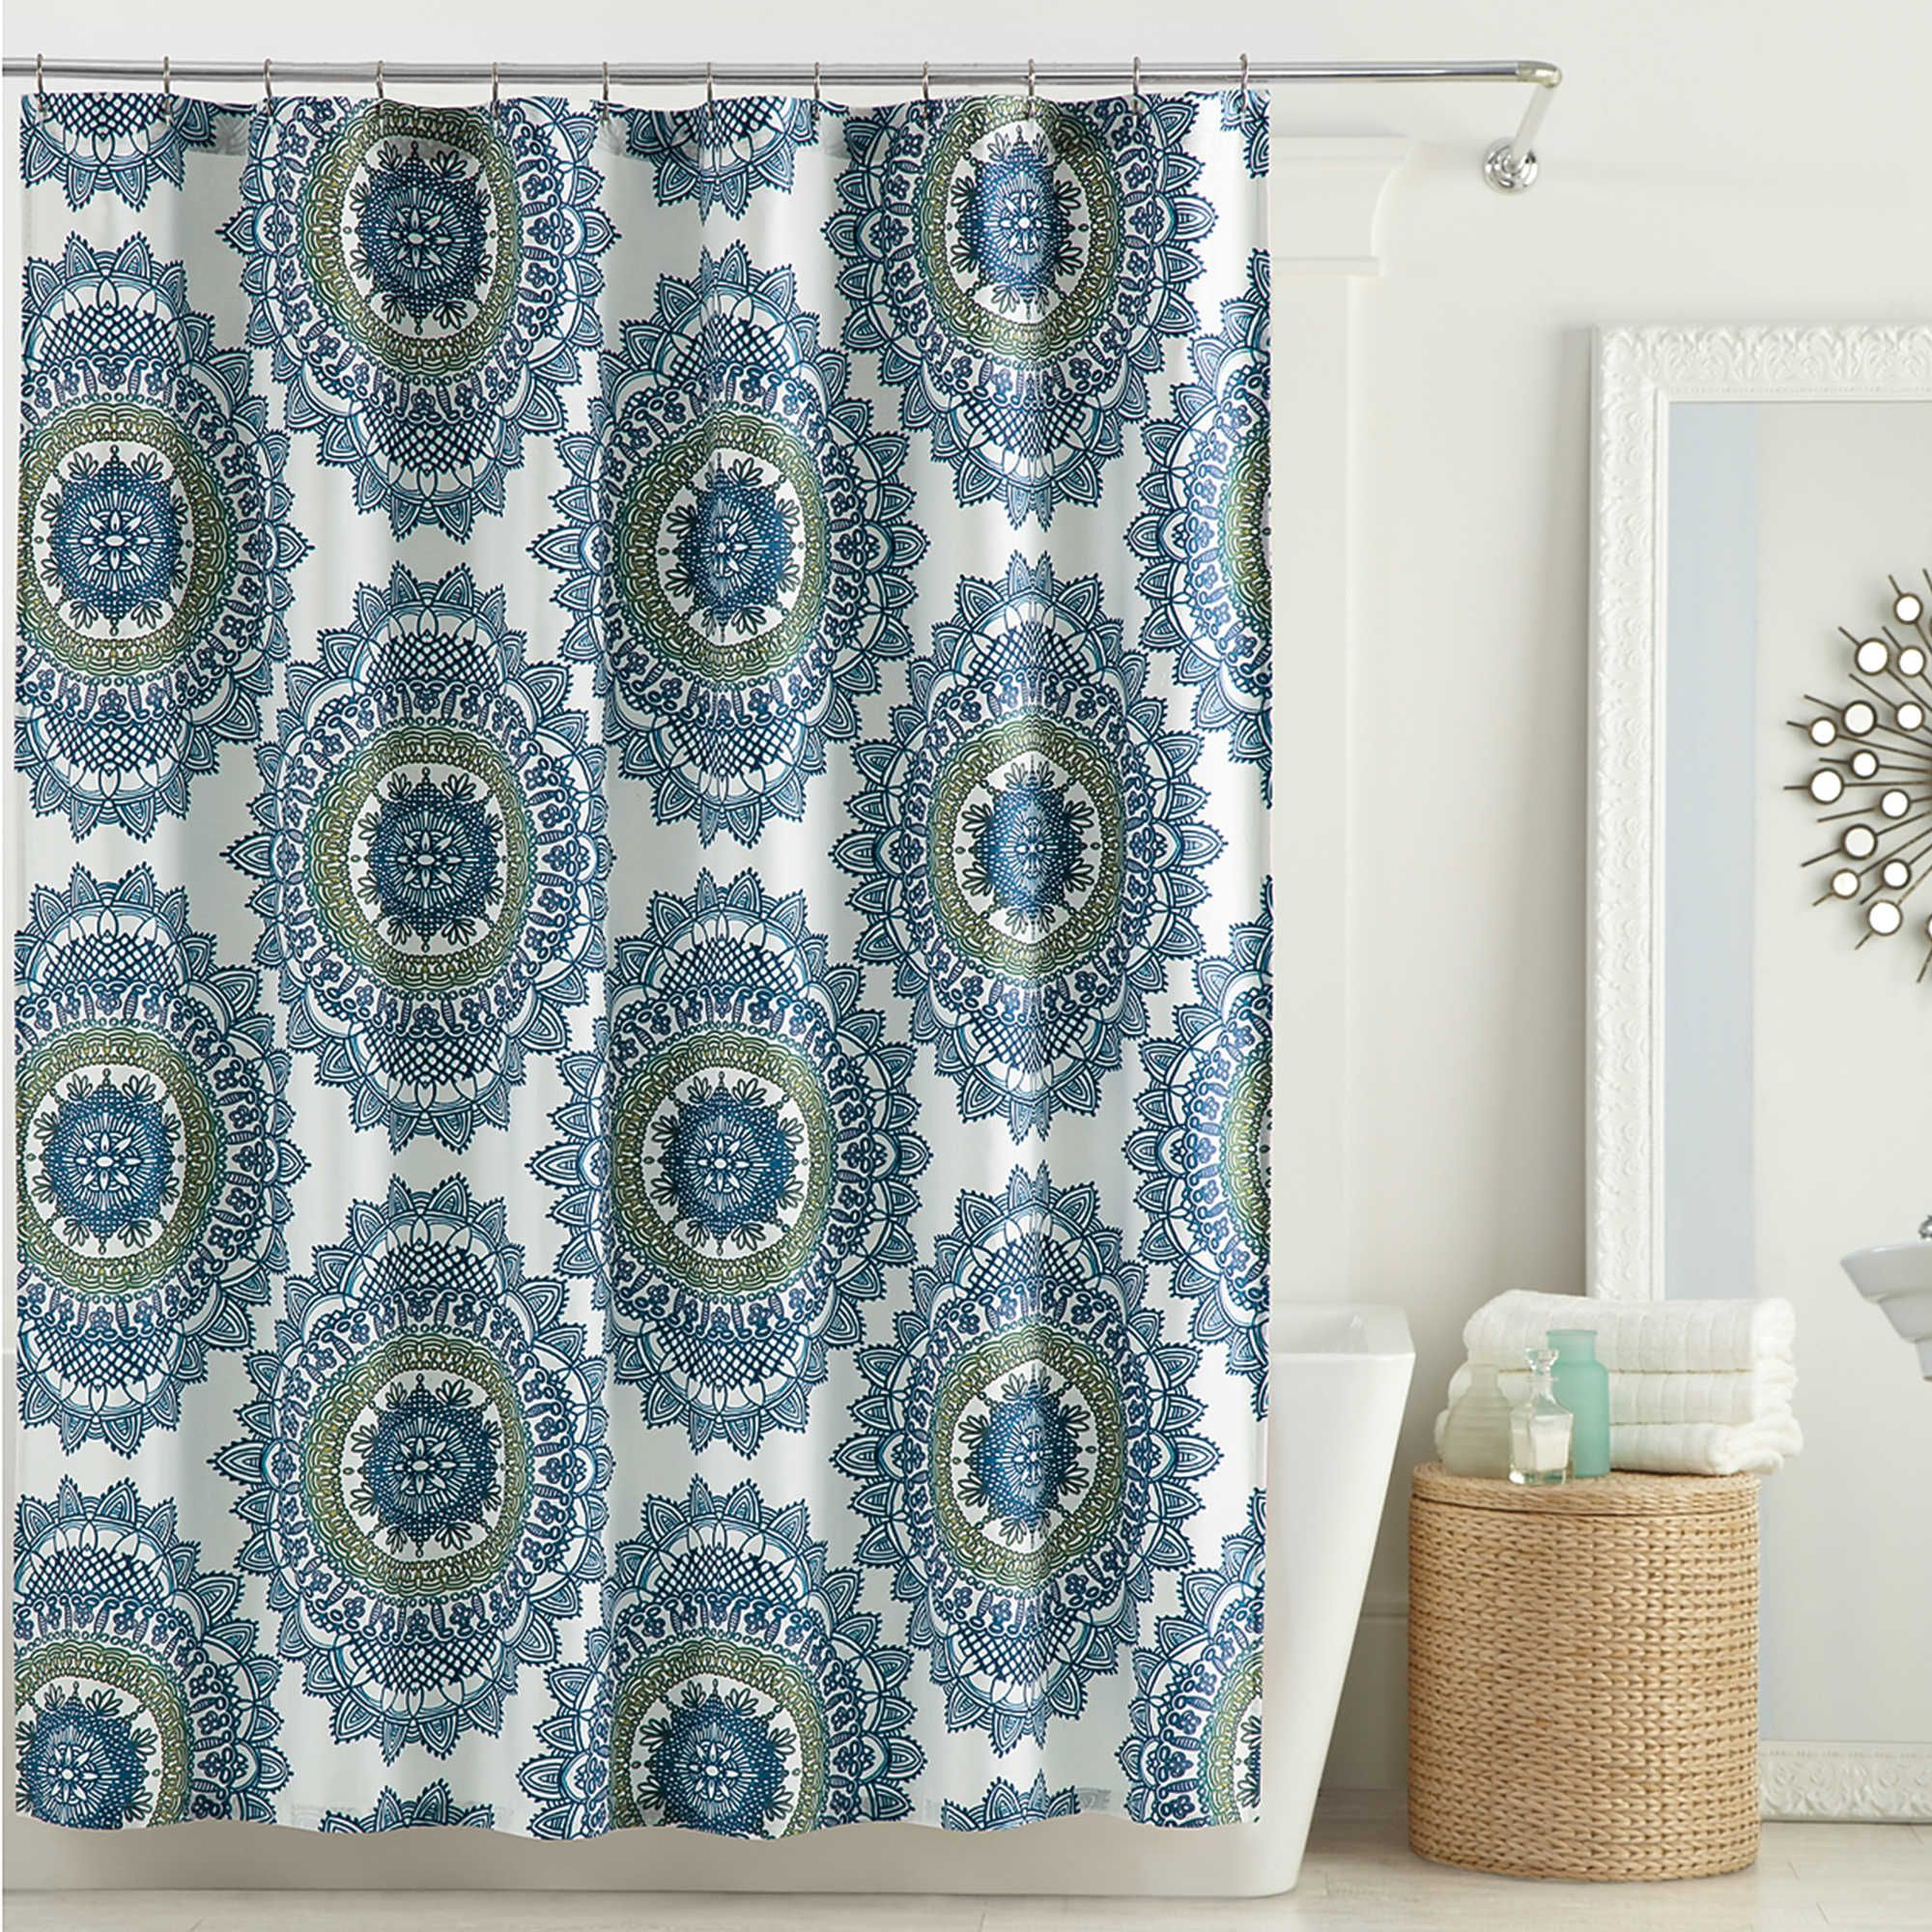 Guest Bath Ideas Anthology Bungalow 72 Inch X 96 Inch Shower Curtain In Teal Teal Shower Curtains Stall Shower Curtain 96 Inch Shower Curtain